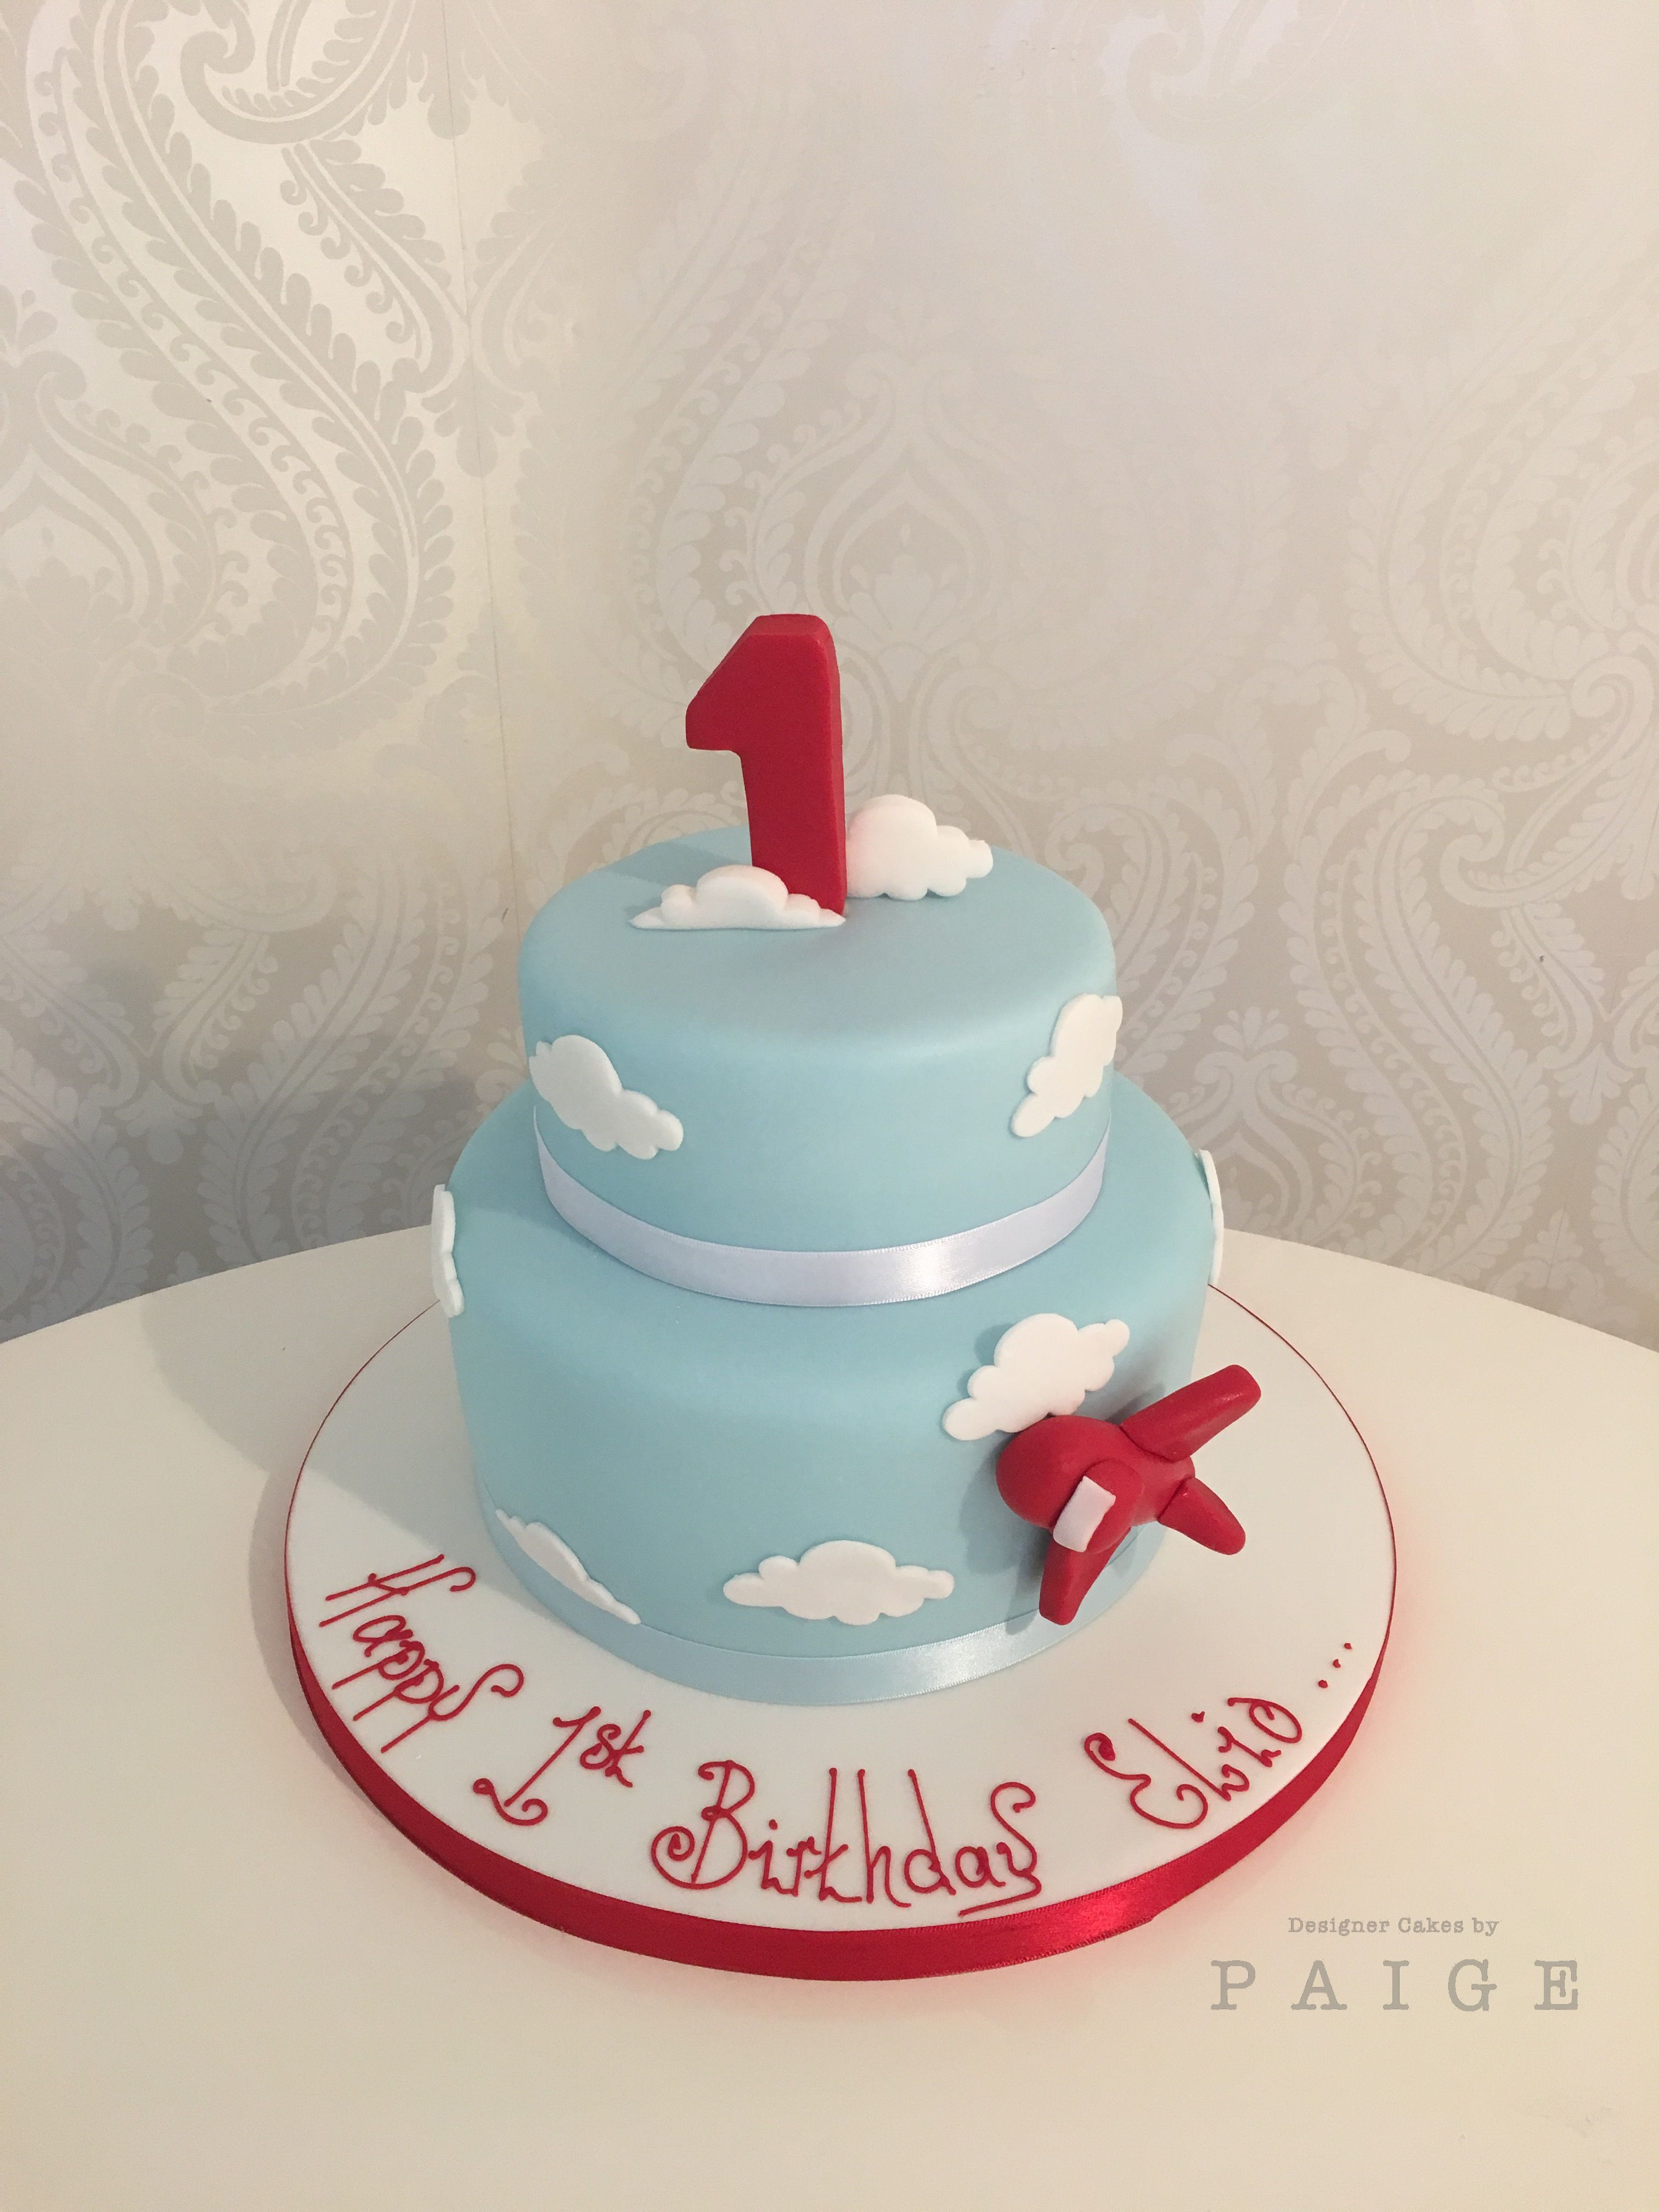 First Birthday Cake In Baby Blue Finished With Fluffy White Clouds